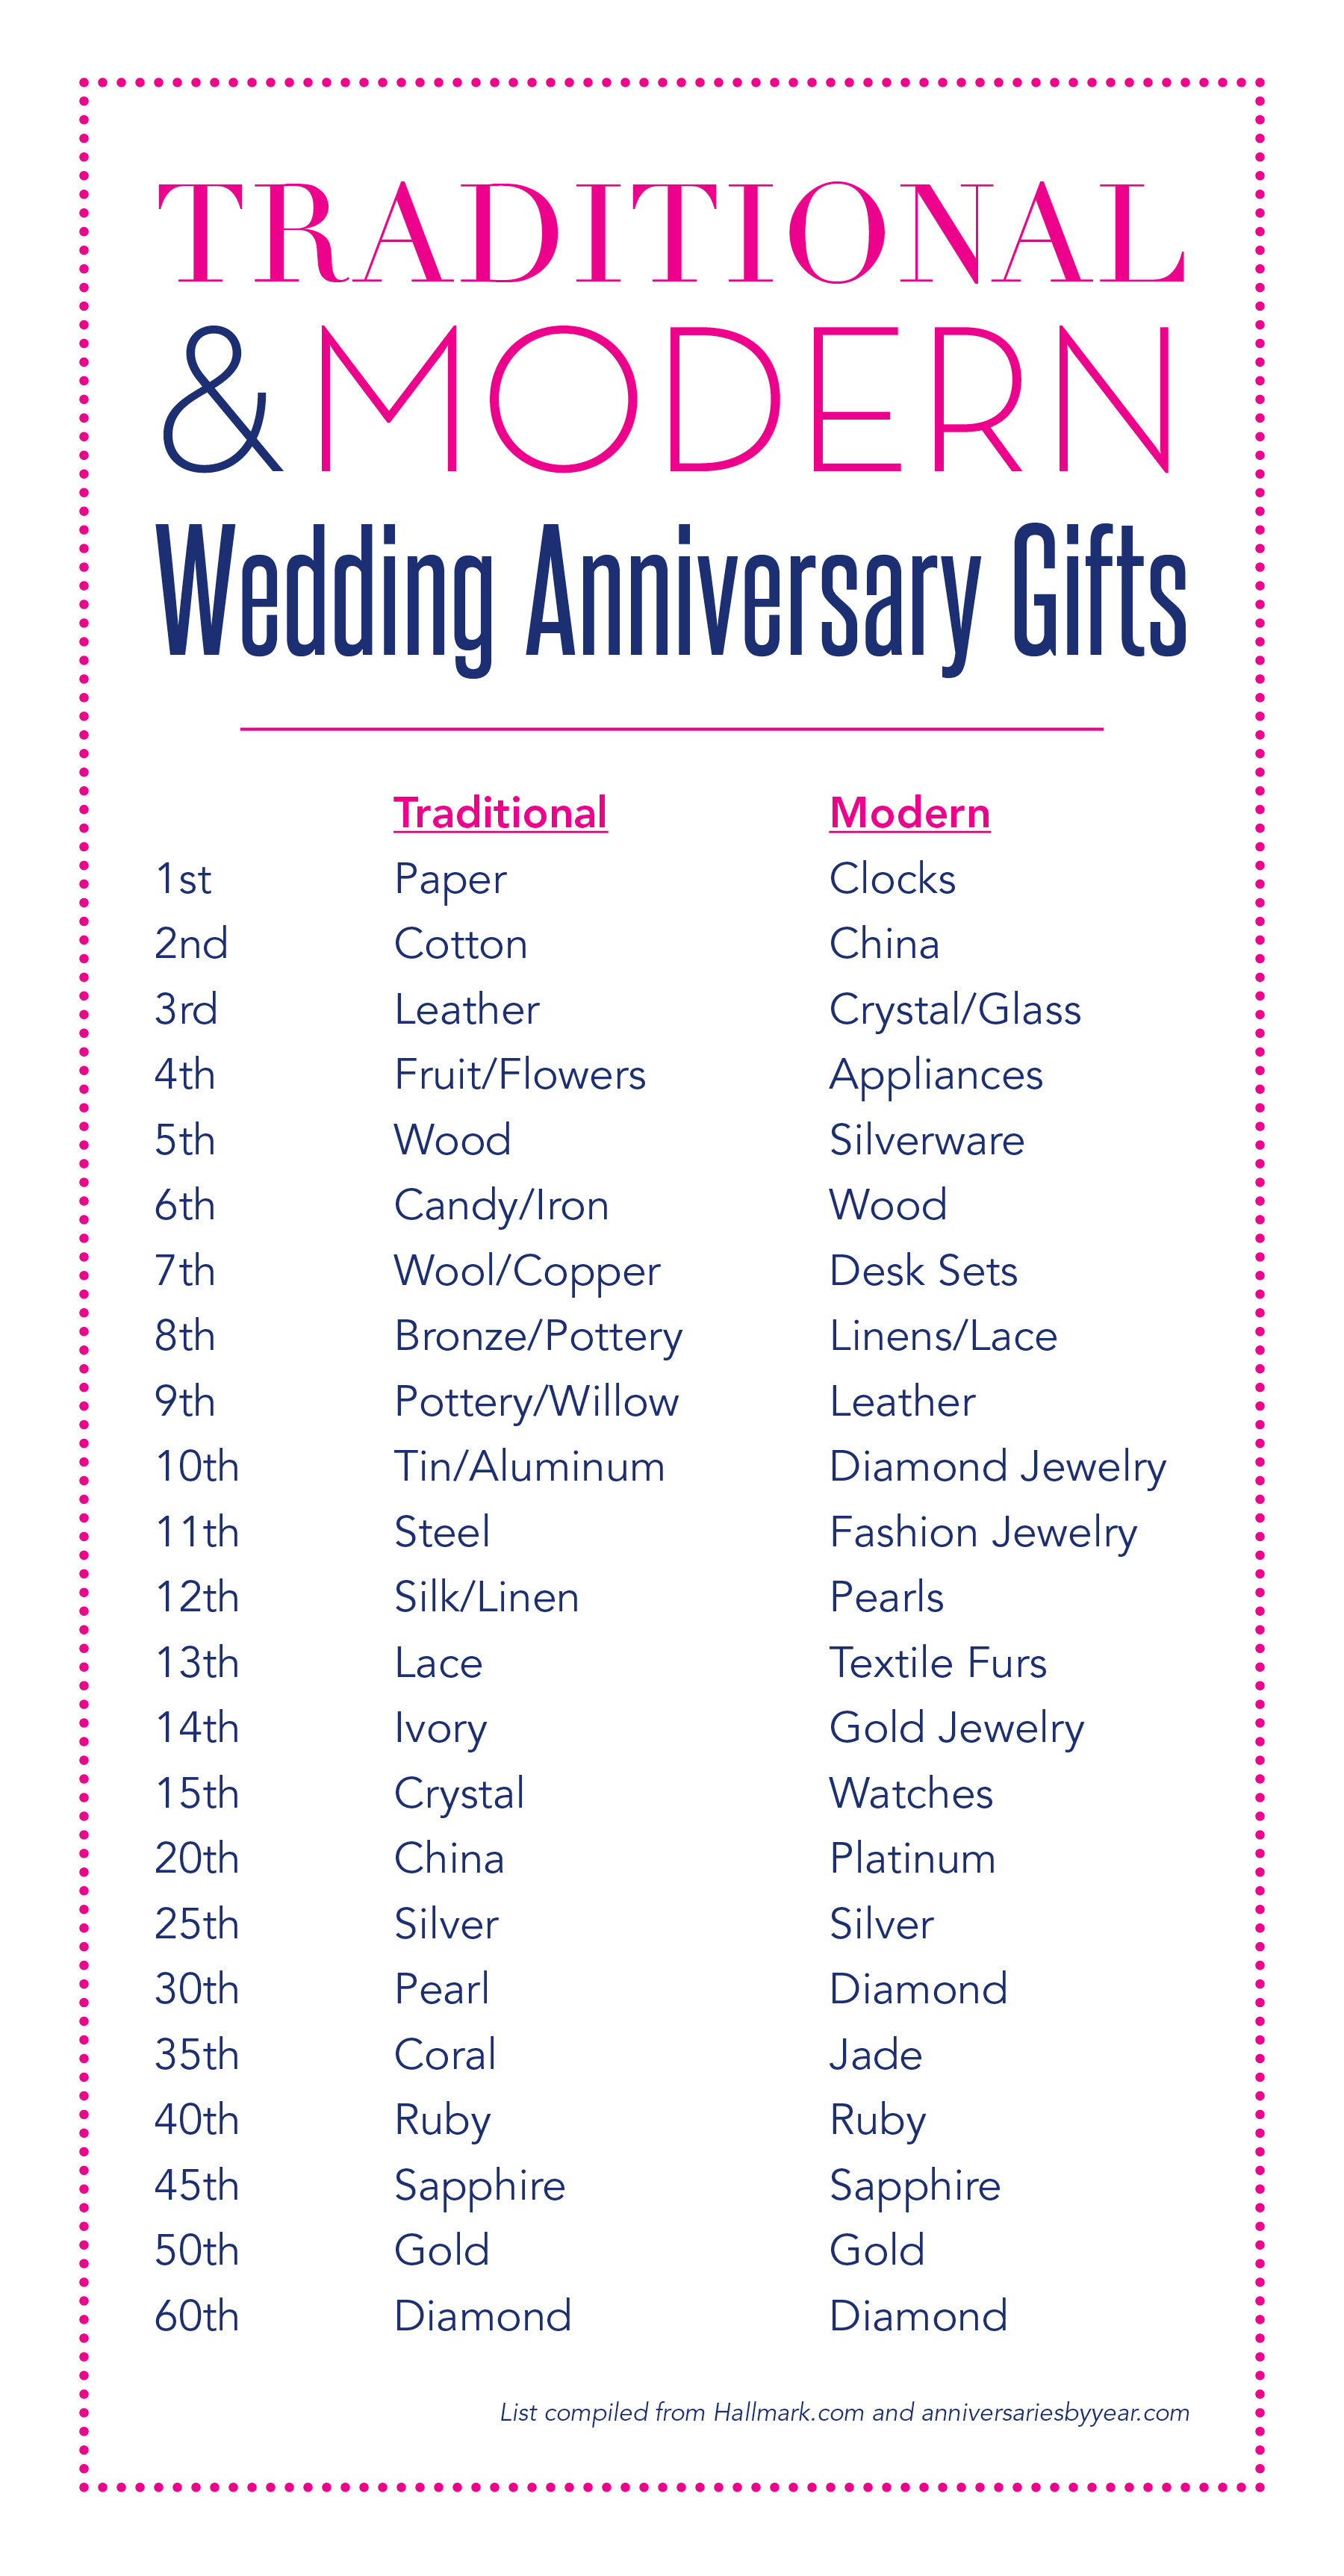 Wedding Gifts For 8 Year Anniversary : Year Anniversary Related Keywords & Suggestions - 8 Year Anniversary ...